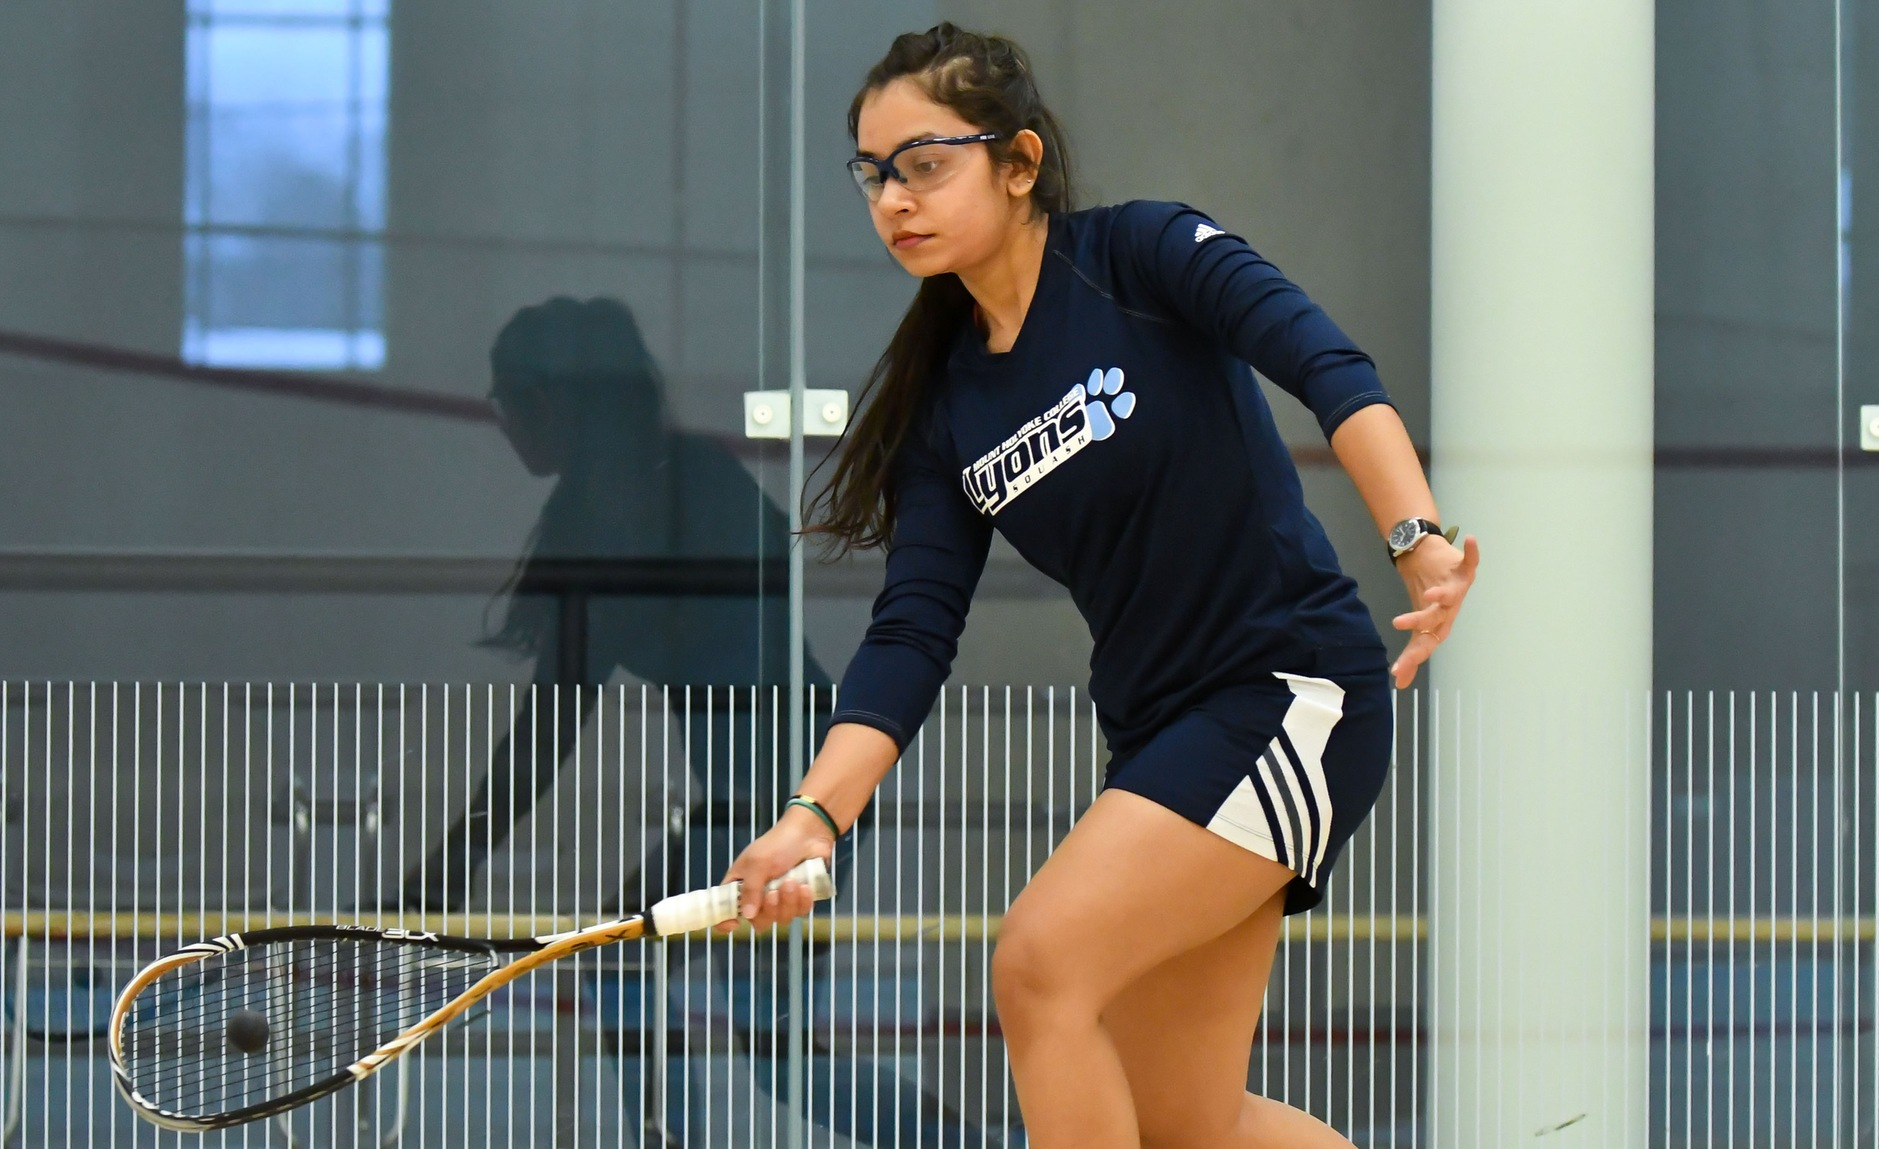 Squash Falls In Semifinals of the Epps Cup (D Division) at CSA Championships